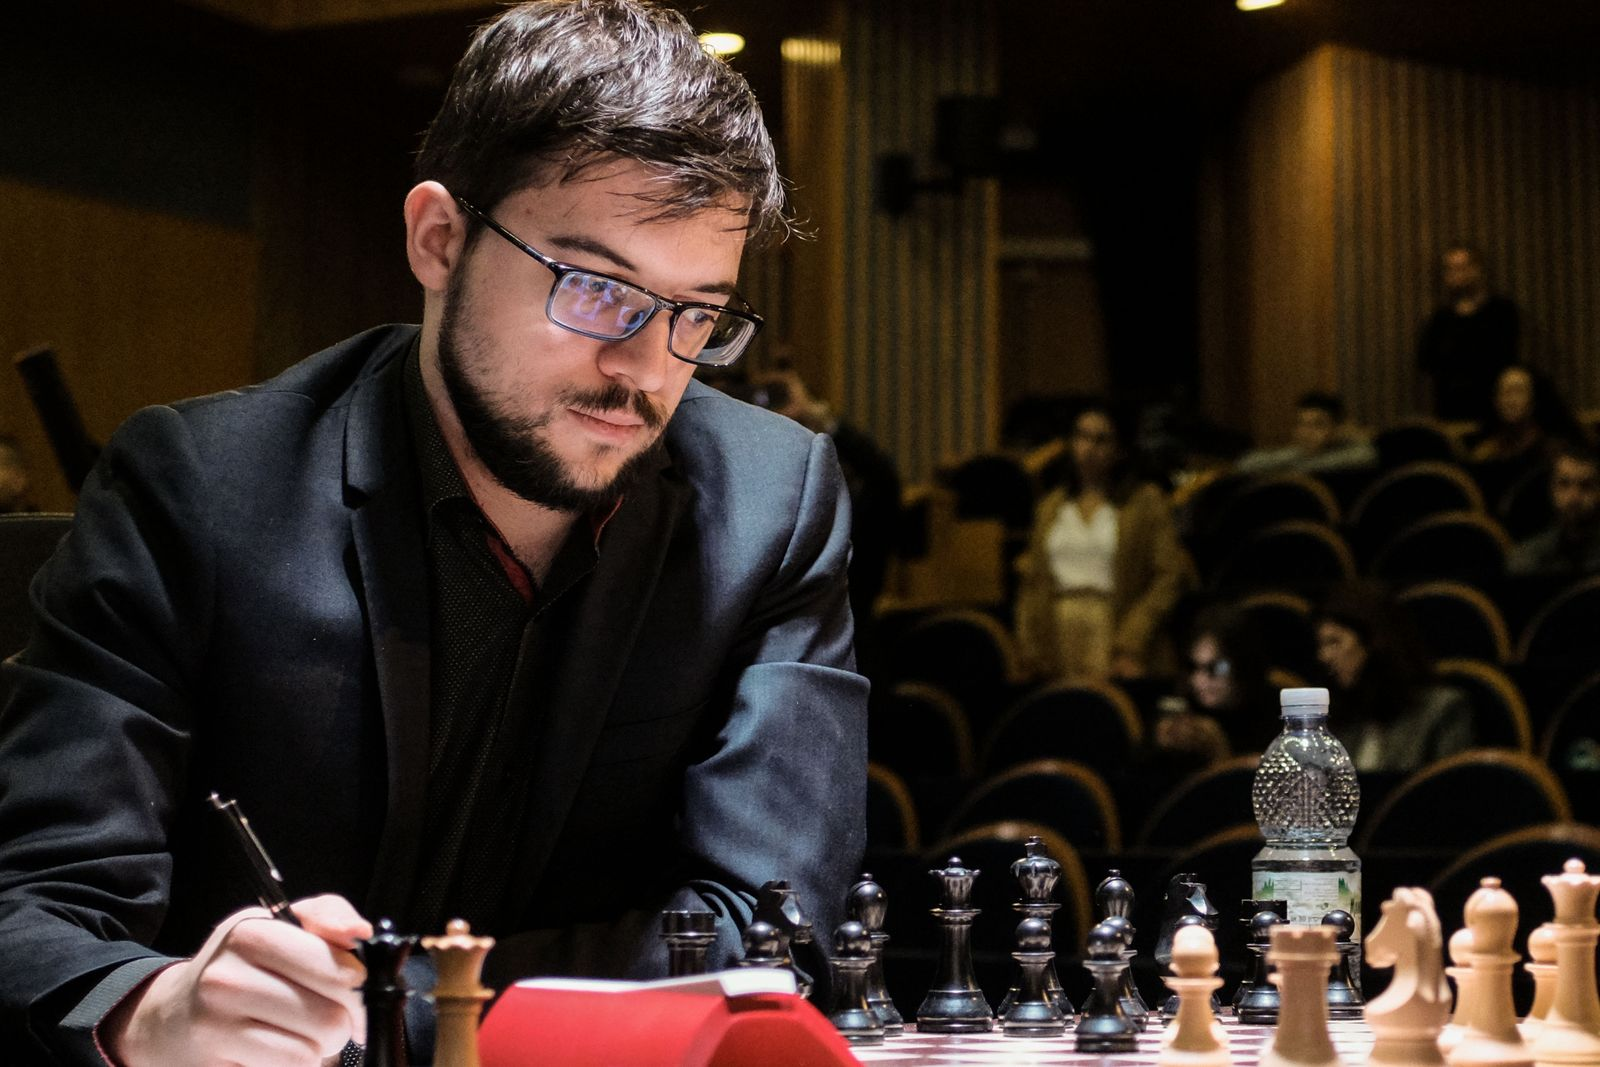 December 11, 2019, Jerusalem, Israel: MAXIME VACHIER LAGRAVE, 30, of France, competes with Topalov of Bulgaria, in Day